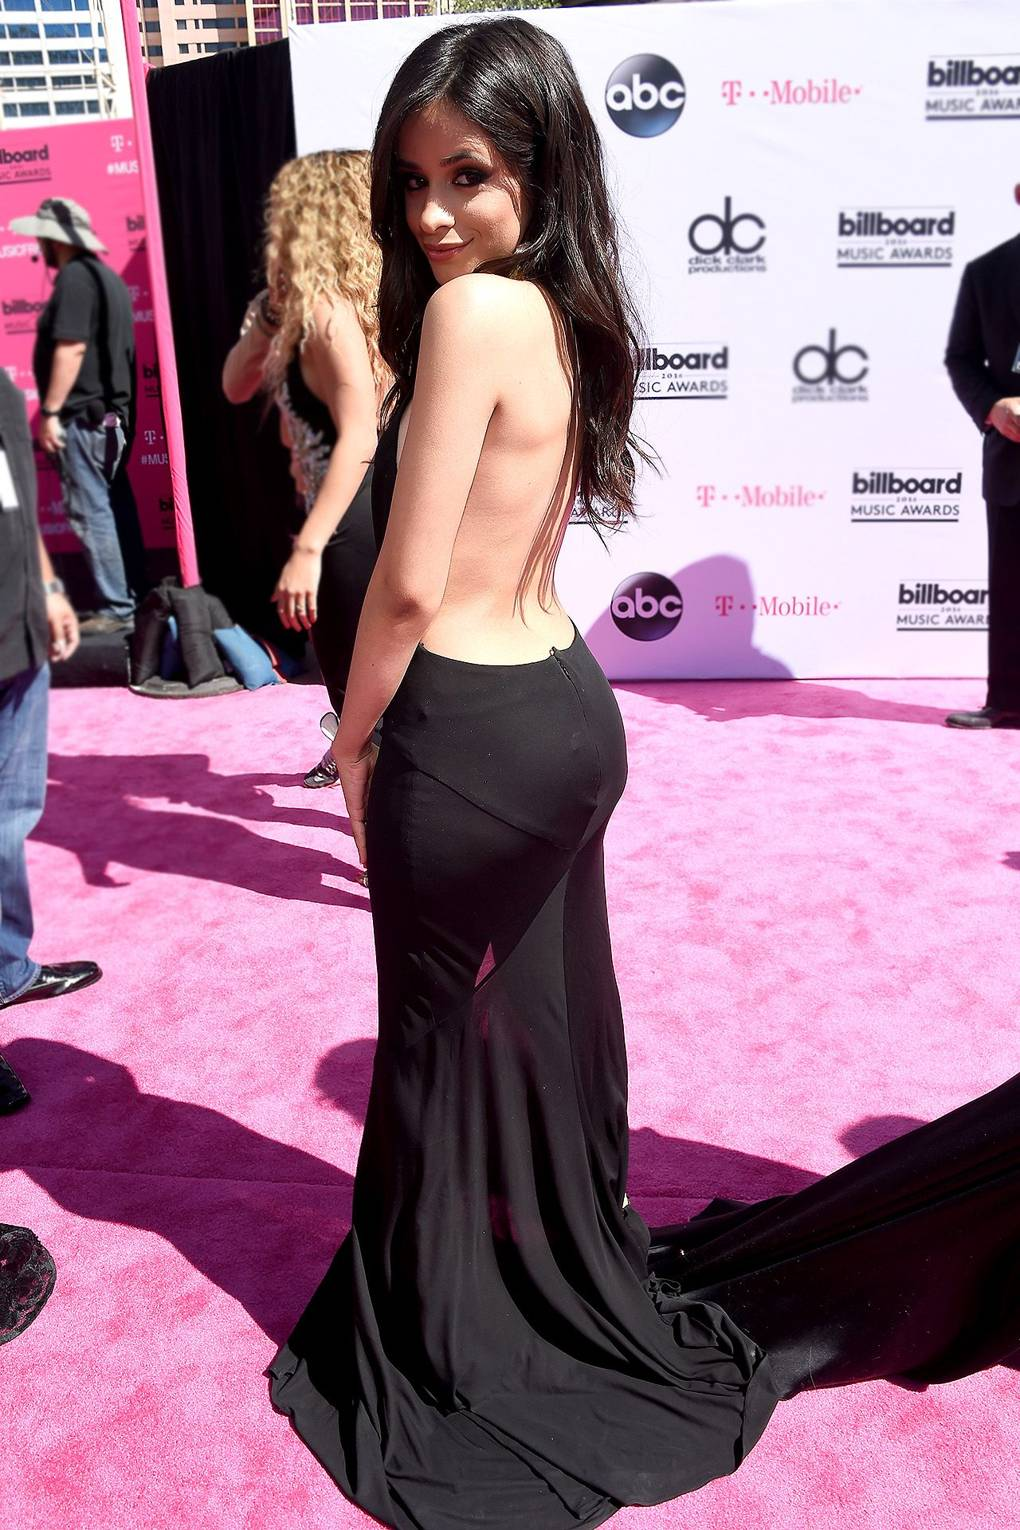 camila cabello awesome back